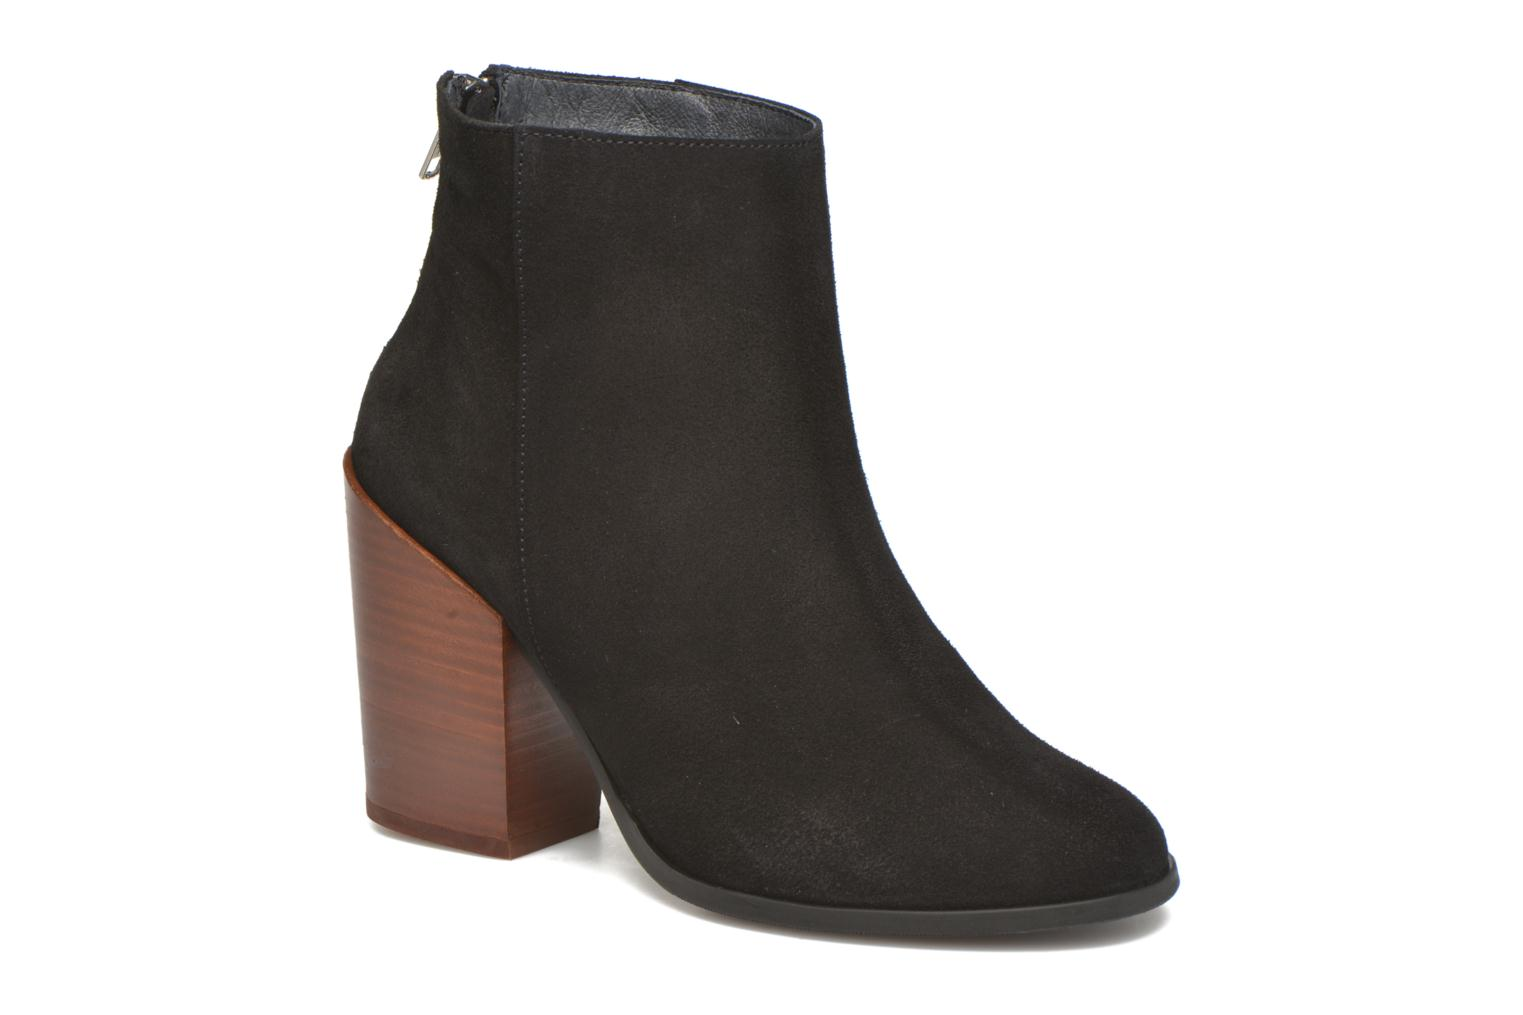 Dorthe Leather Boot by Vero ModaRebajas - 40%